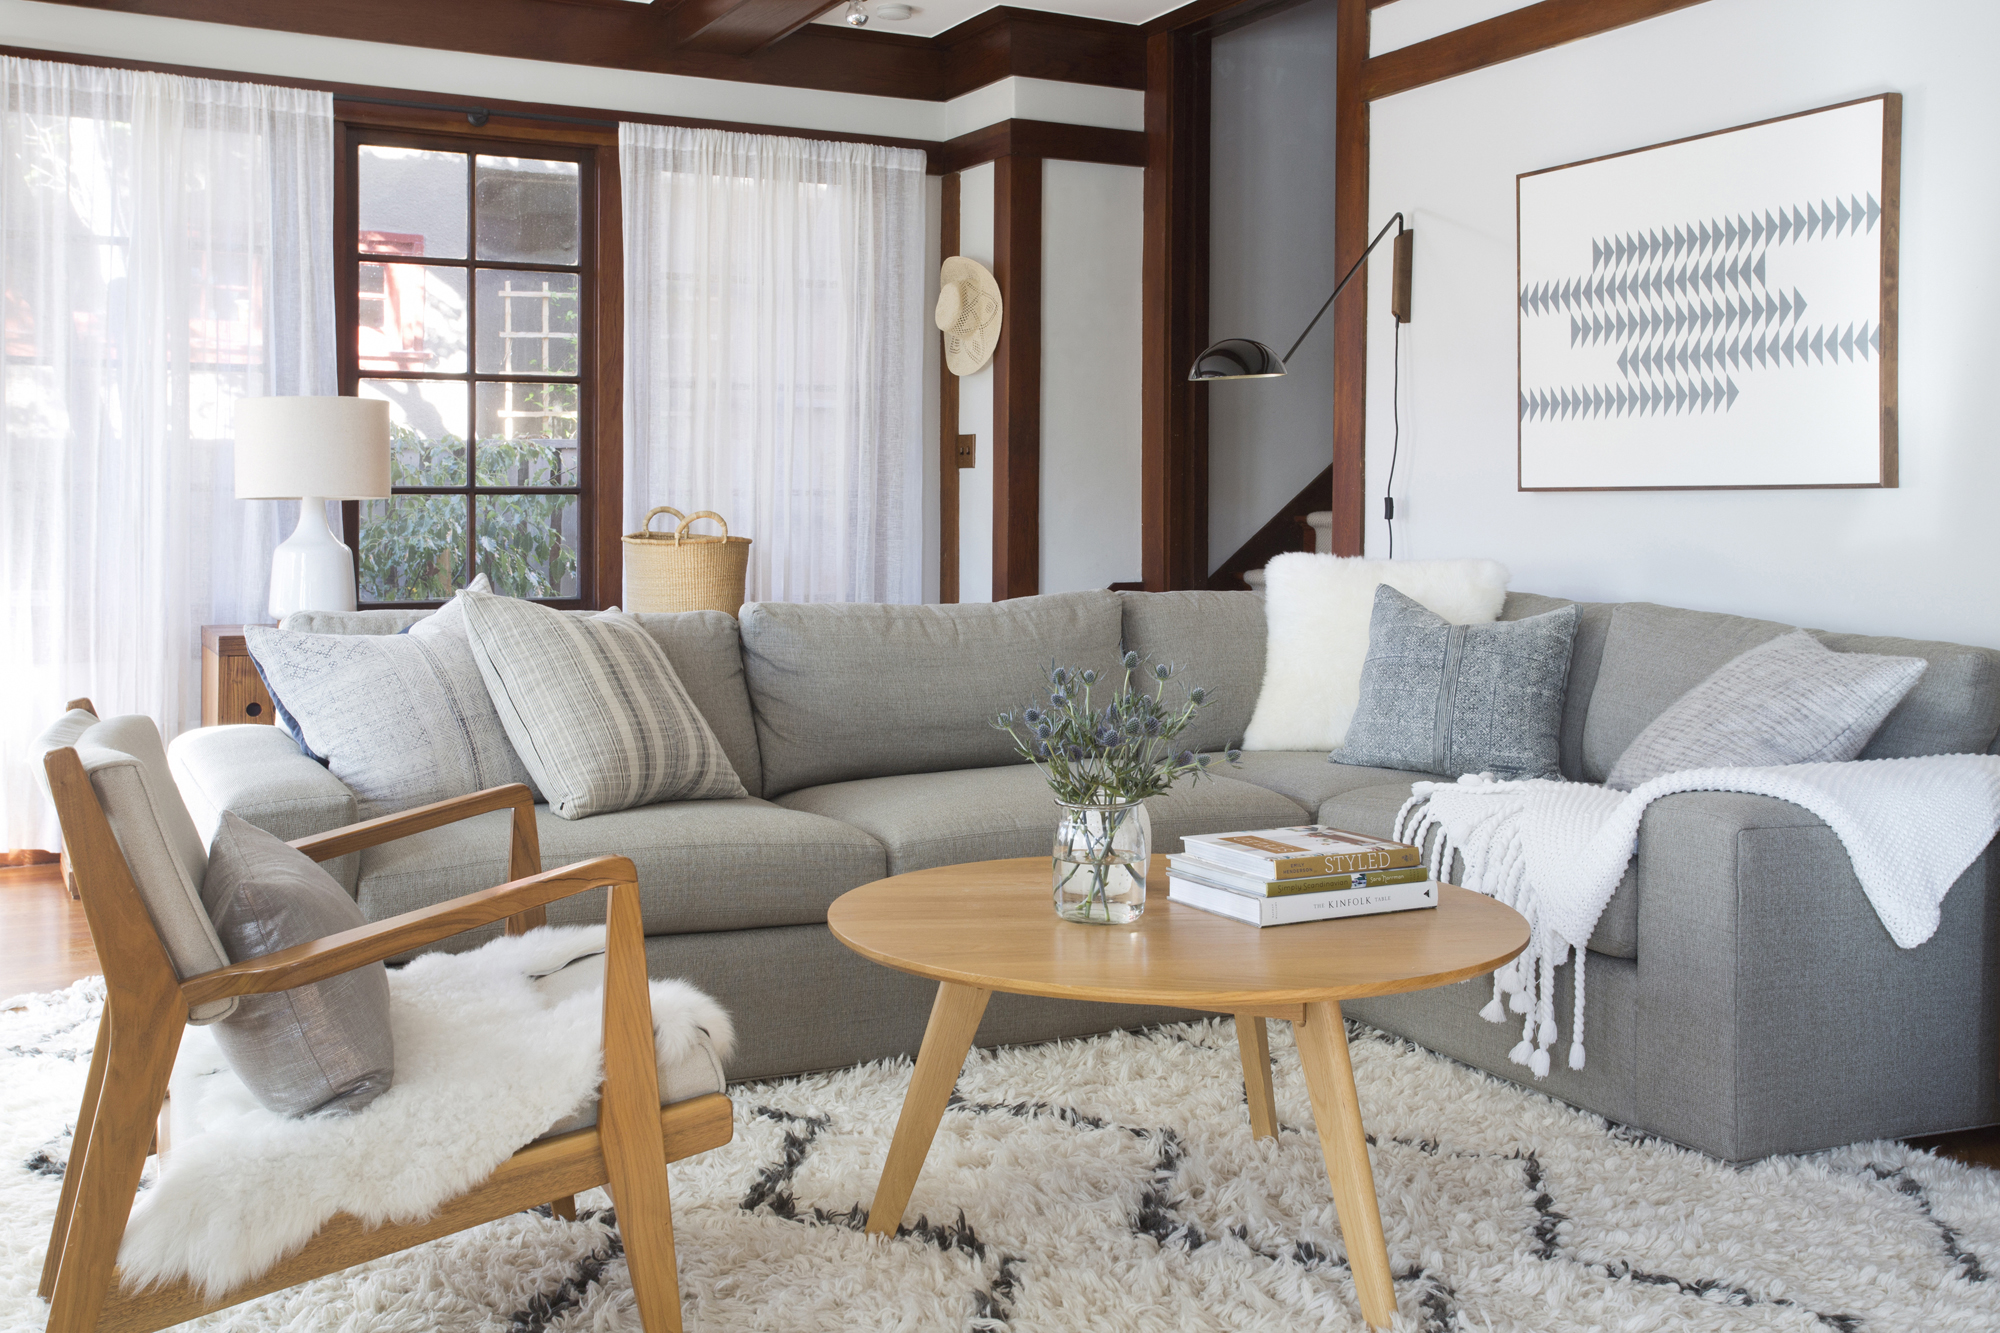 Home Organizing Tips with Pets, Living Room